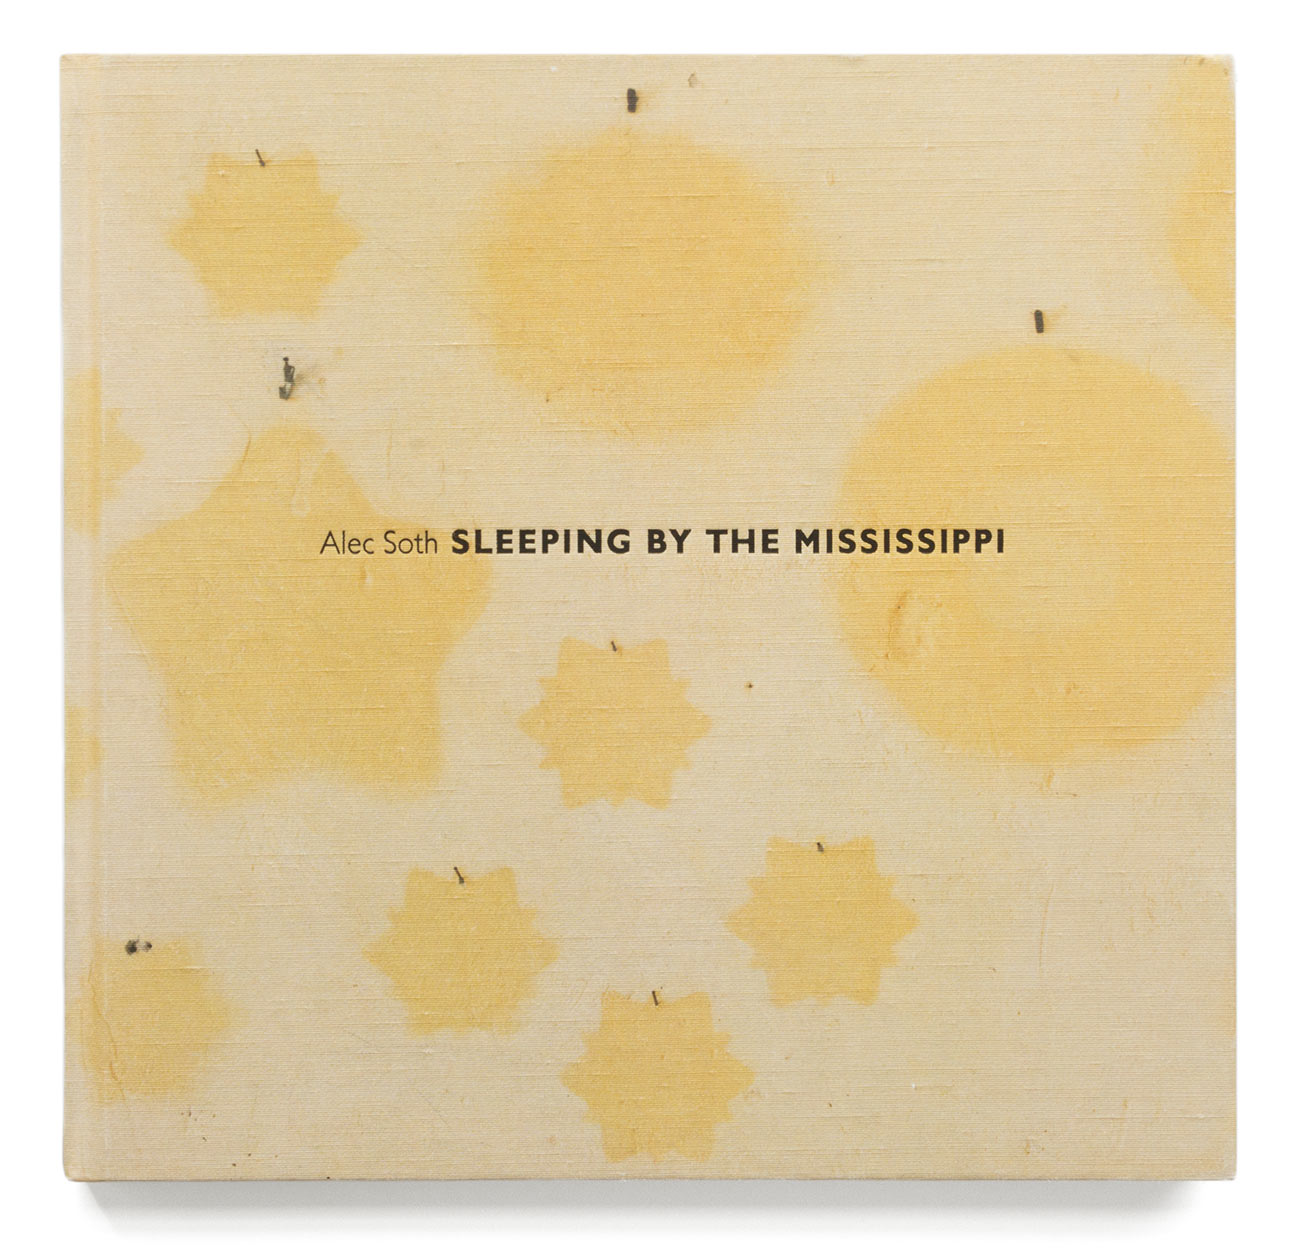 Sleeping by the Mississippi. Steidl, 2004.